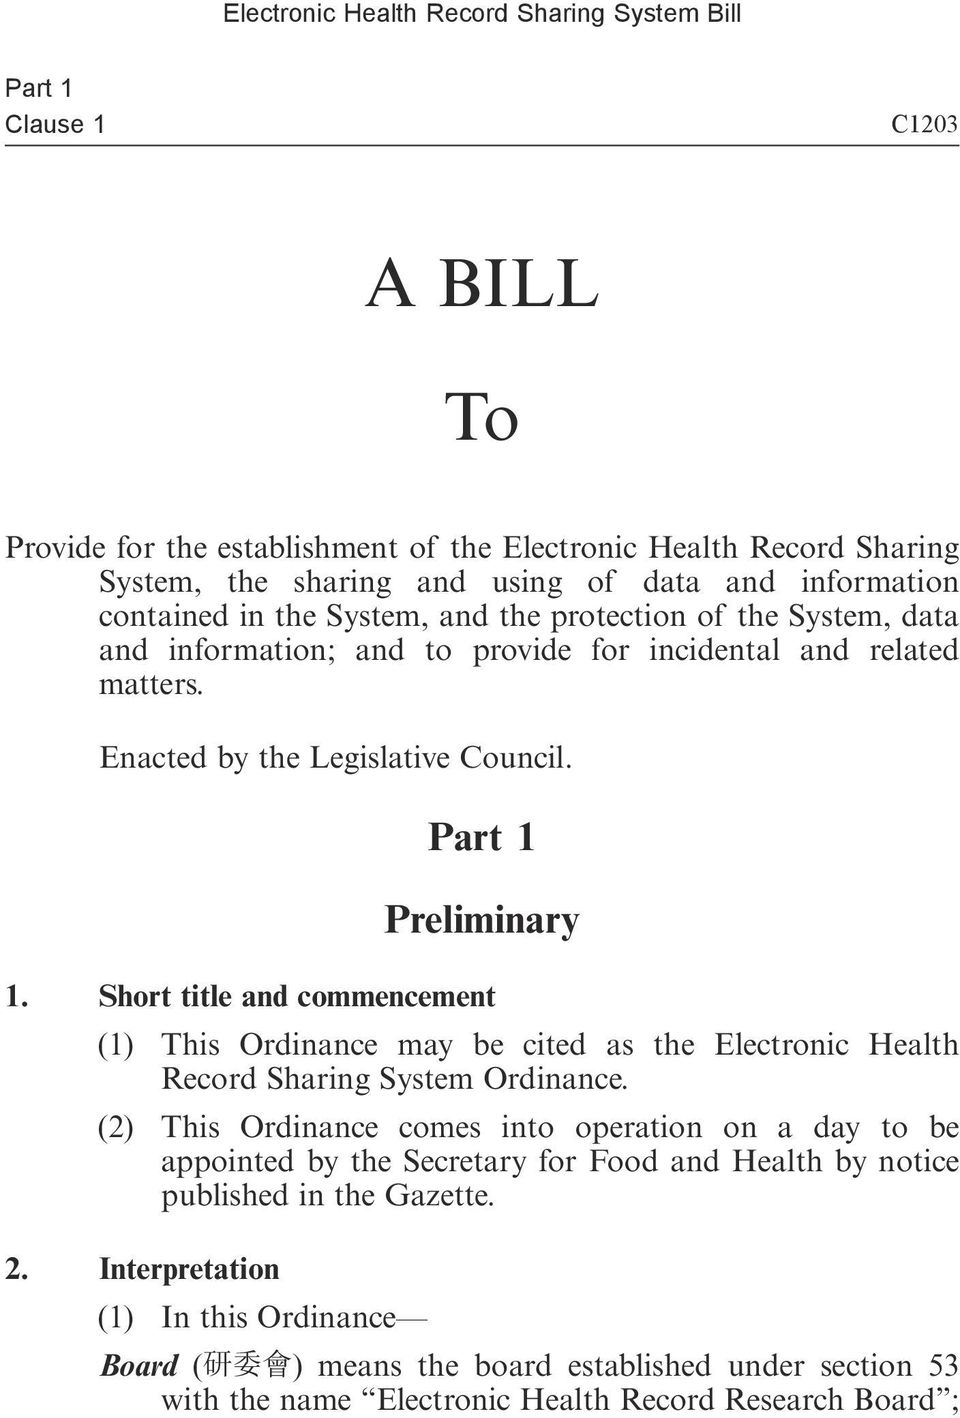 Short title and commencement (1) This Ordinance may be cited as the Electronic Health Record Sharing System Ordinance.